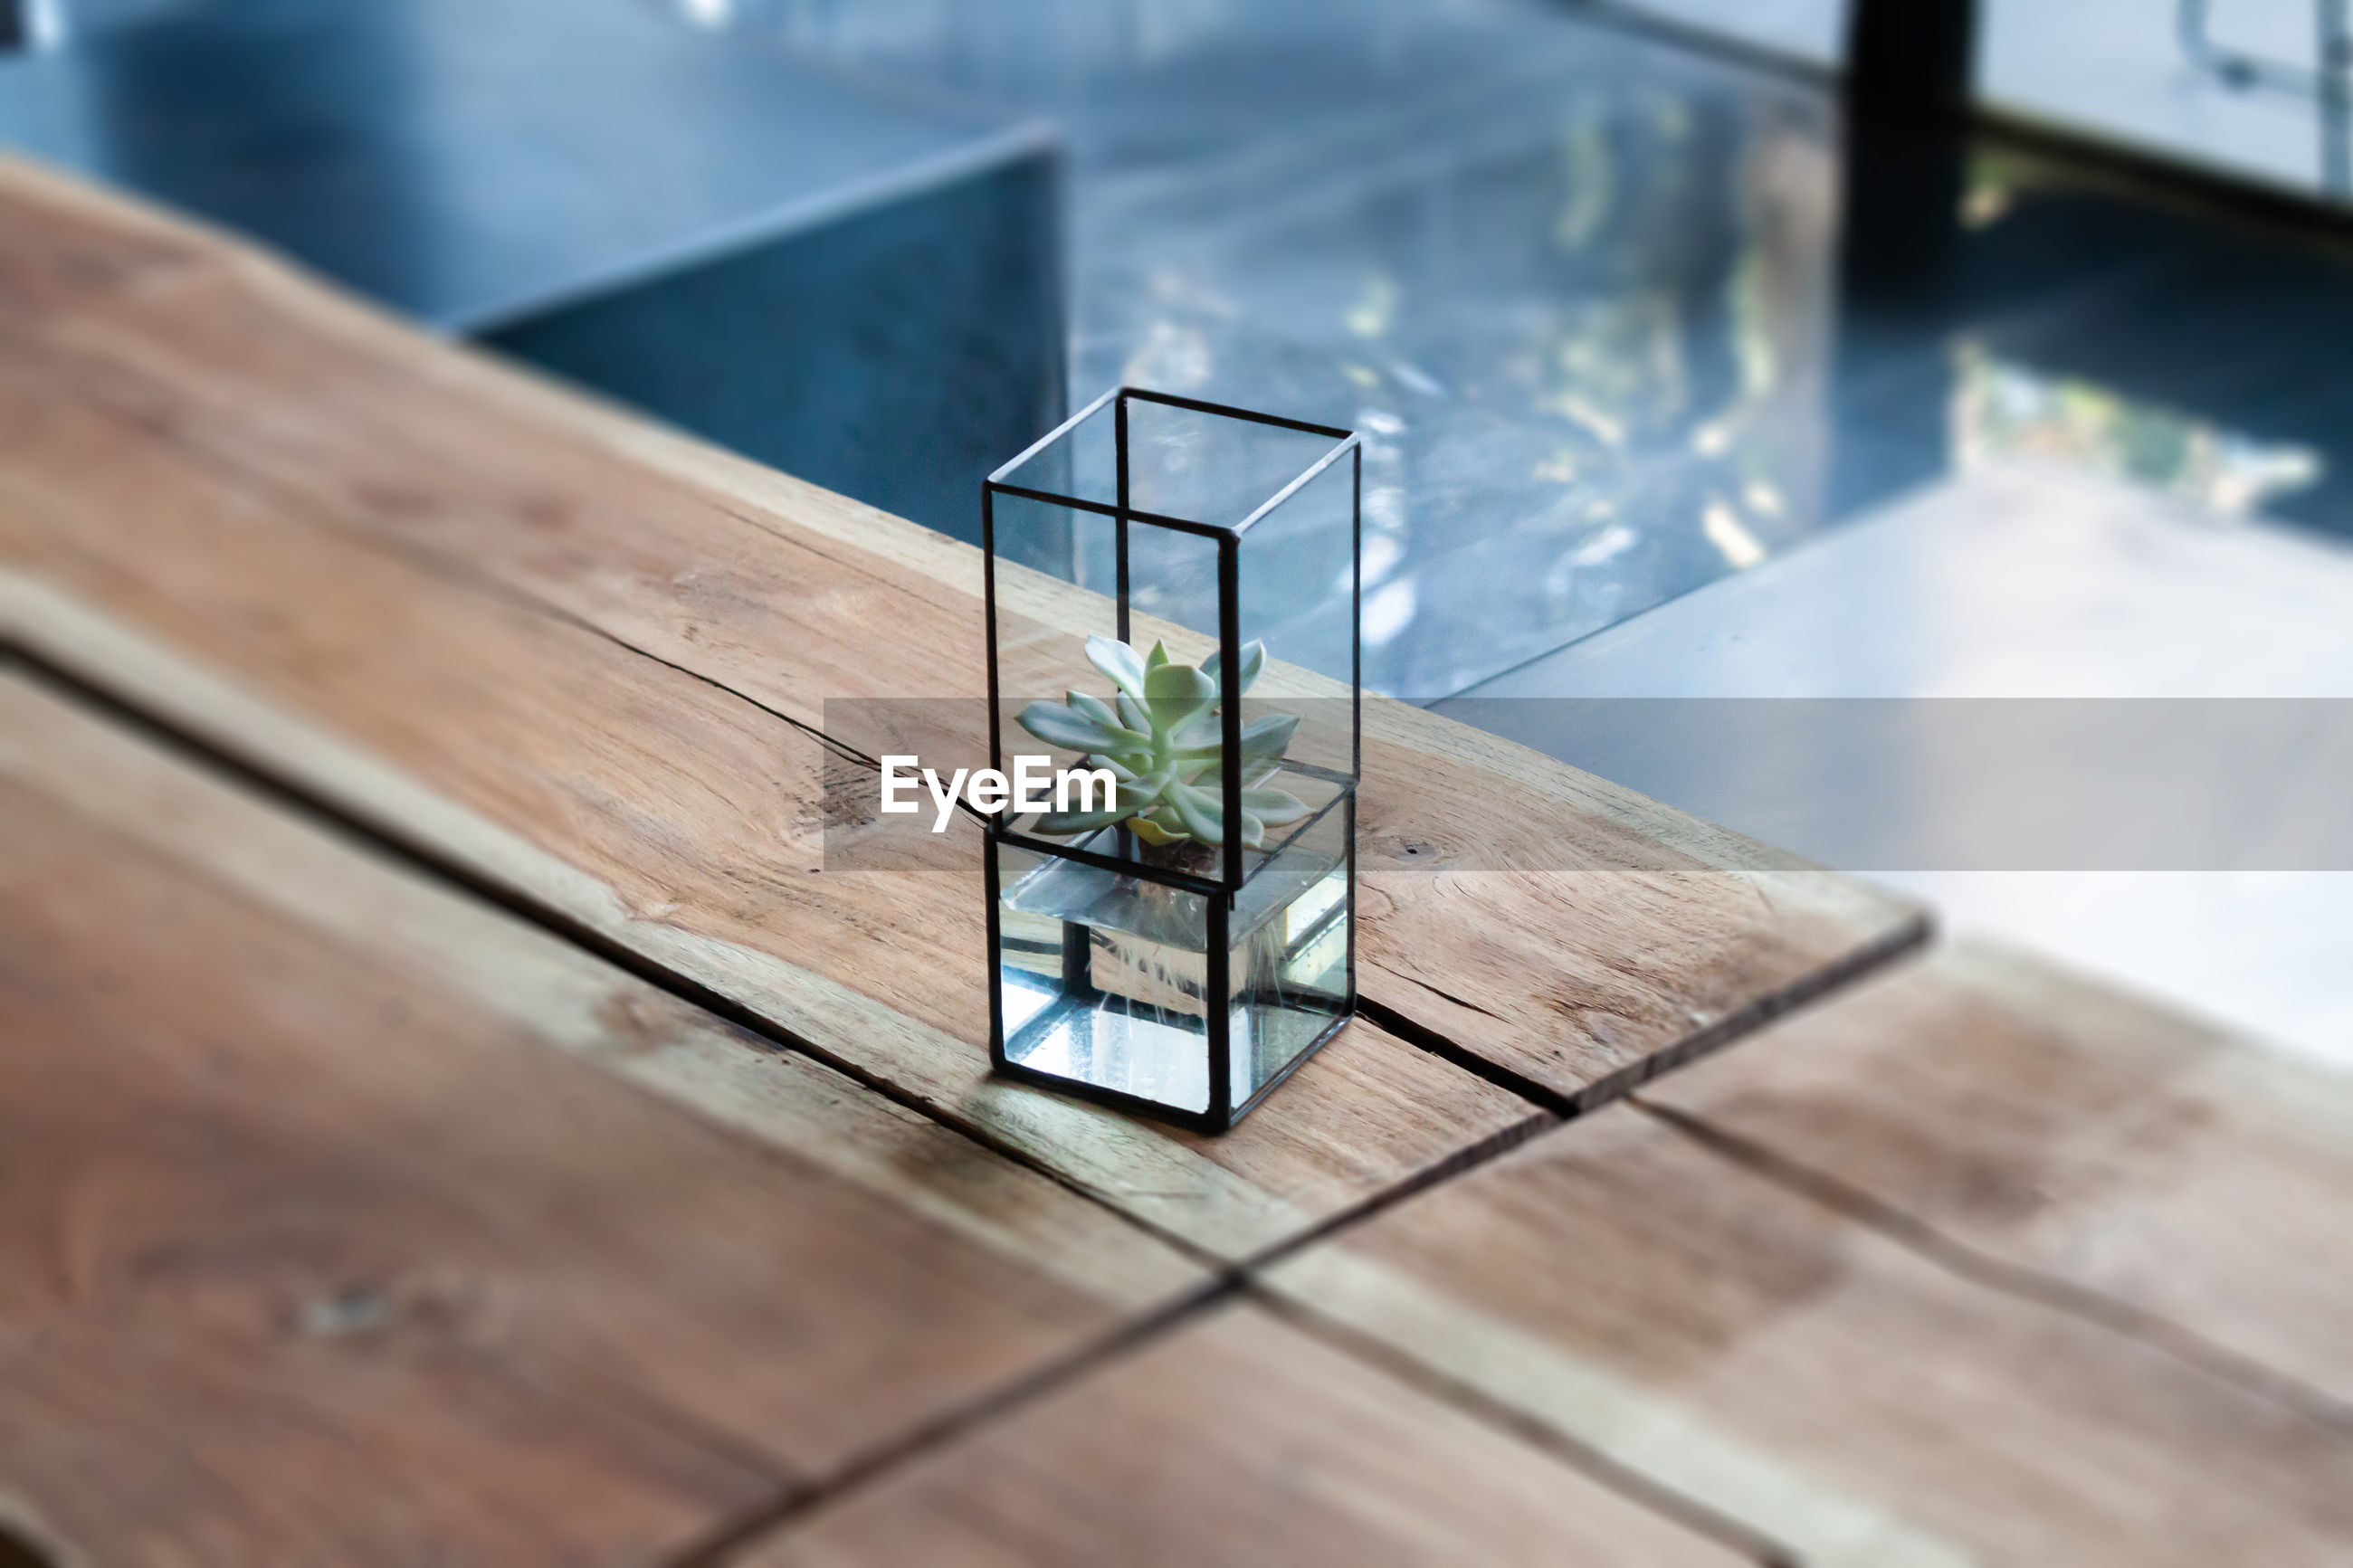 HIGH ANGLE VIEW OF POTTED PLANT ON GLASS TABLE